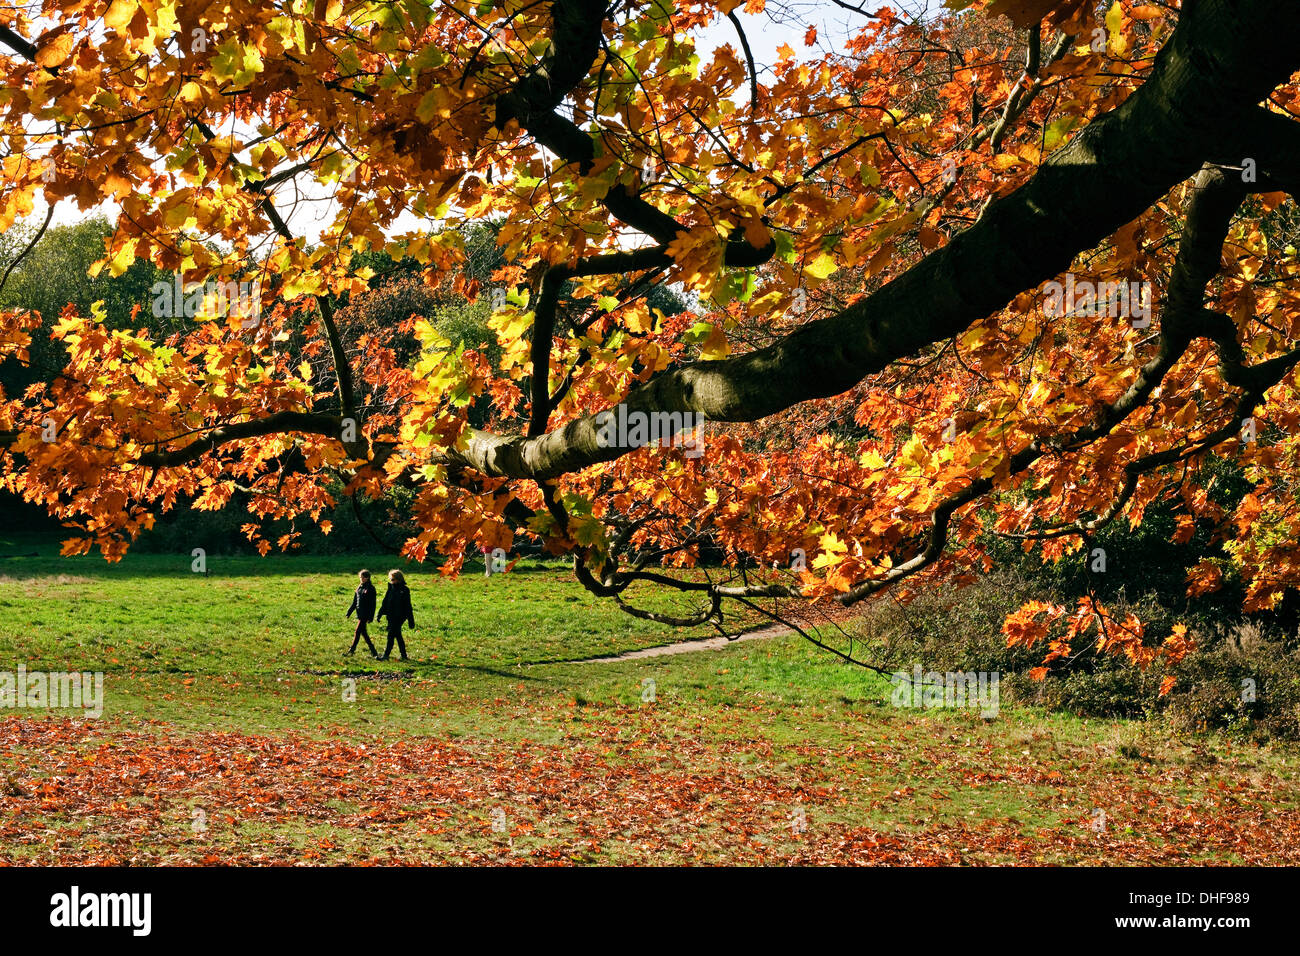 Autumnal scene, Hampstead heath, view from under tree bow, with autumn leaves  two people walk along path in park - Stock Image